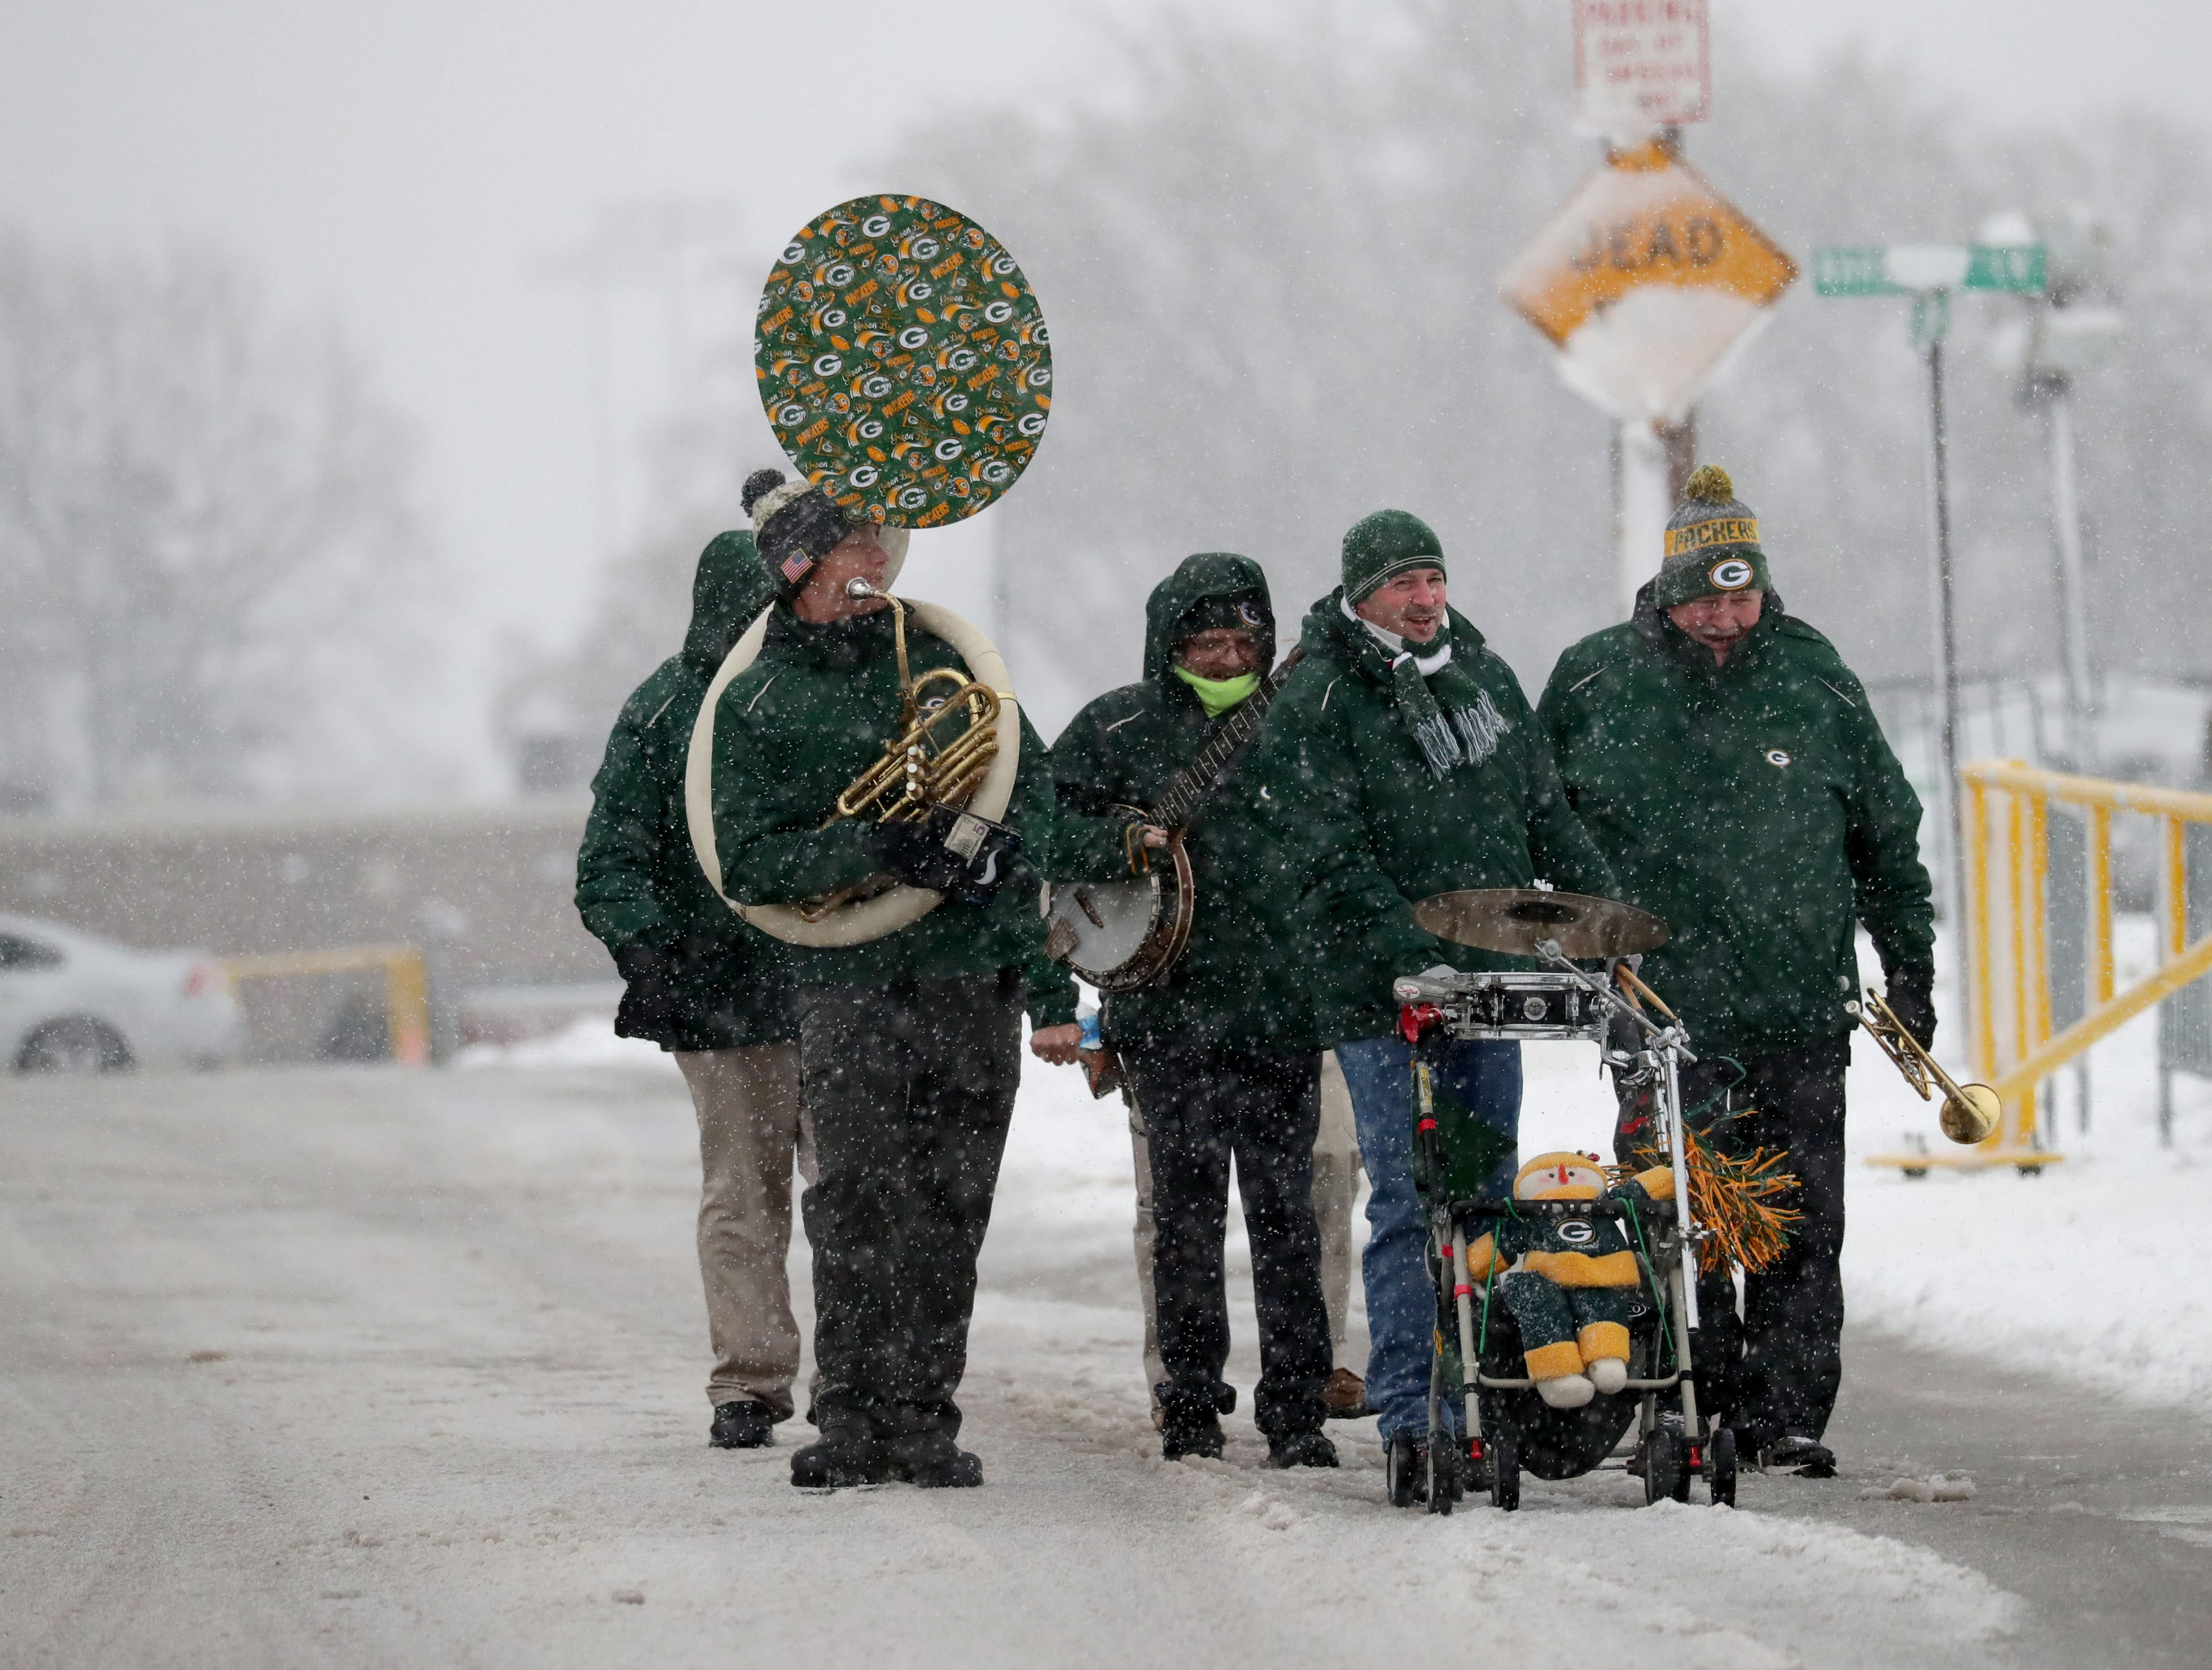 The Packers Tailgate Band makes their way through the snow before playing for tailgaters before the Green Bay Packers game against the Arizona Cardinals at Lambeau Field in Green Bay, Wis. on Sunday, December 2, 2018.